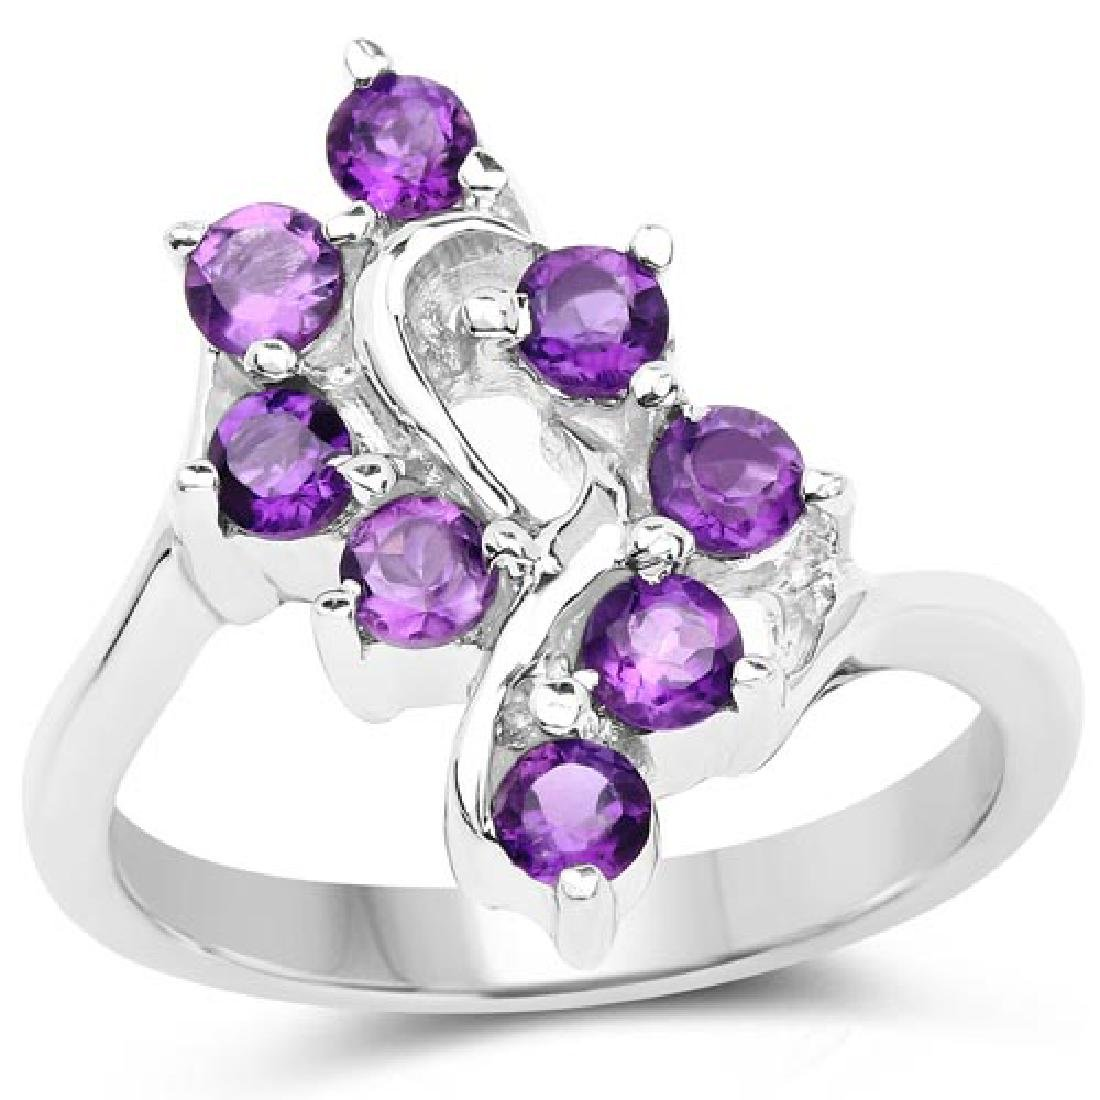 0.80 Carat Genuine Amethyst .925 Sterling Silver Ring